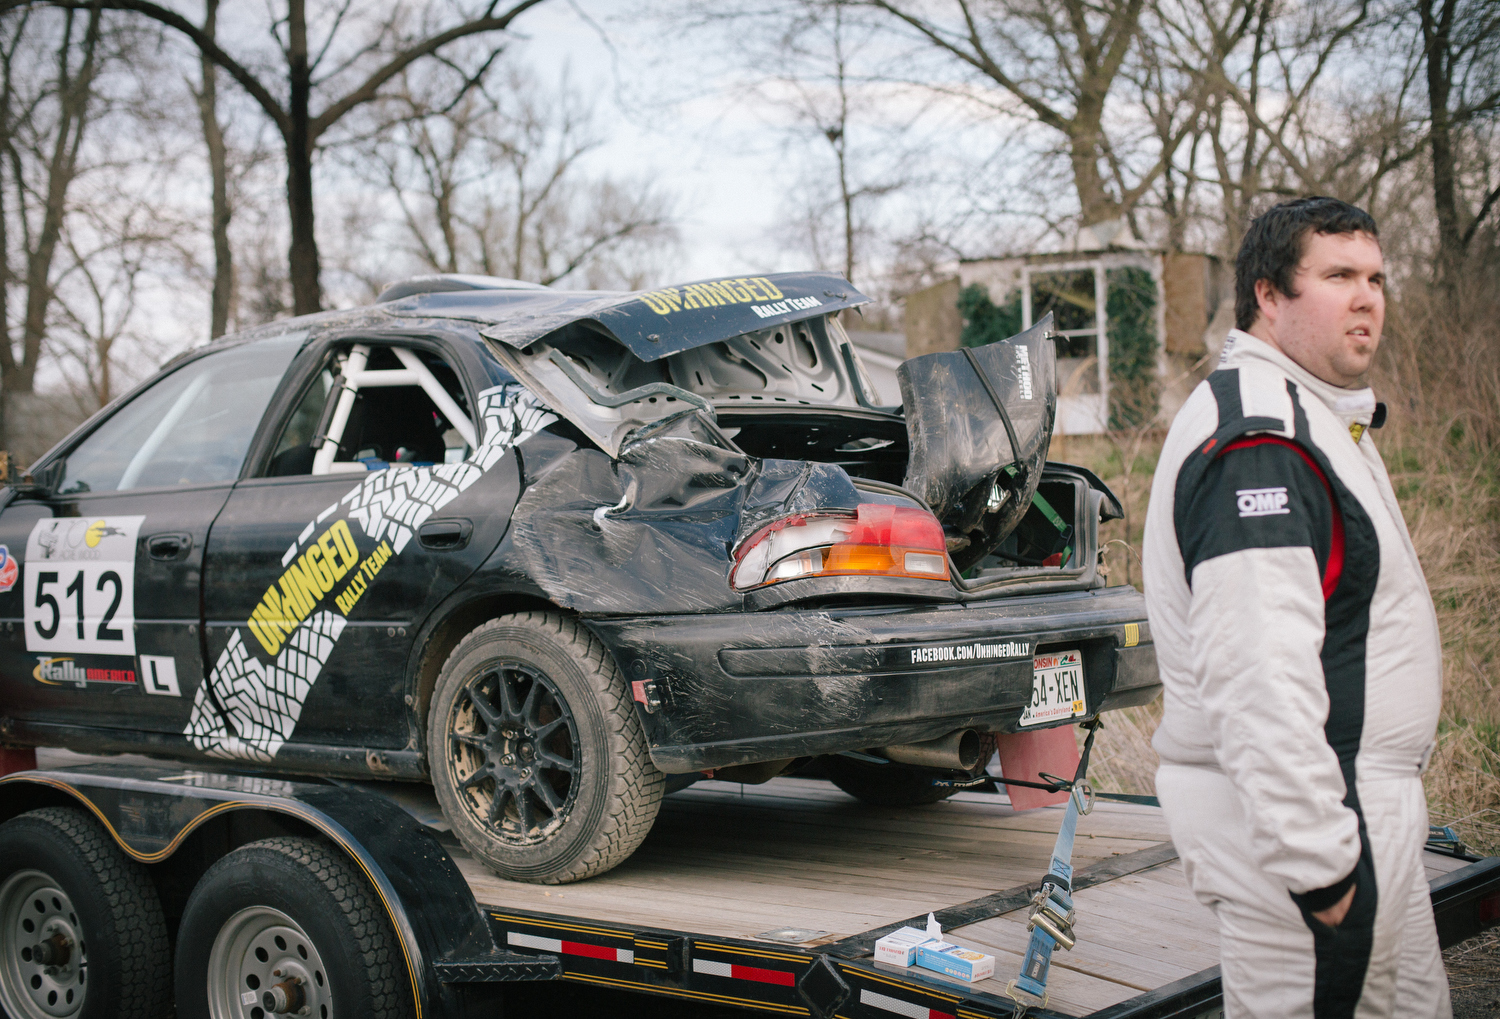 Corey Holmes and his somewhat wrecked 1998 Subaru Impreza.